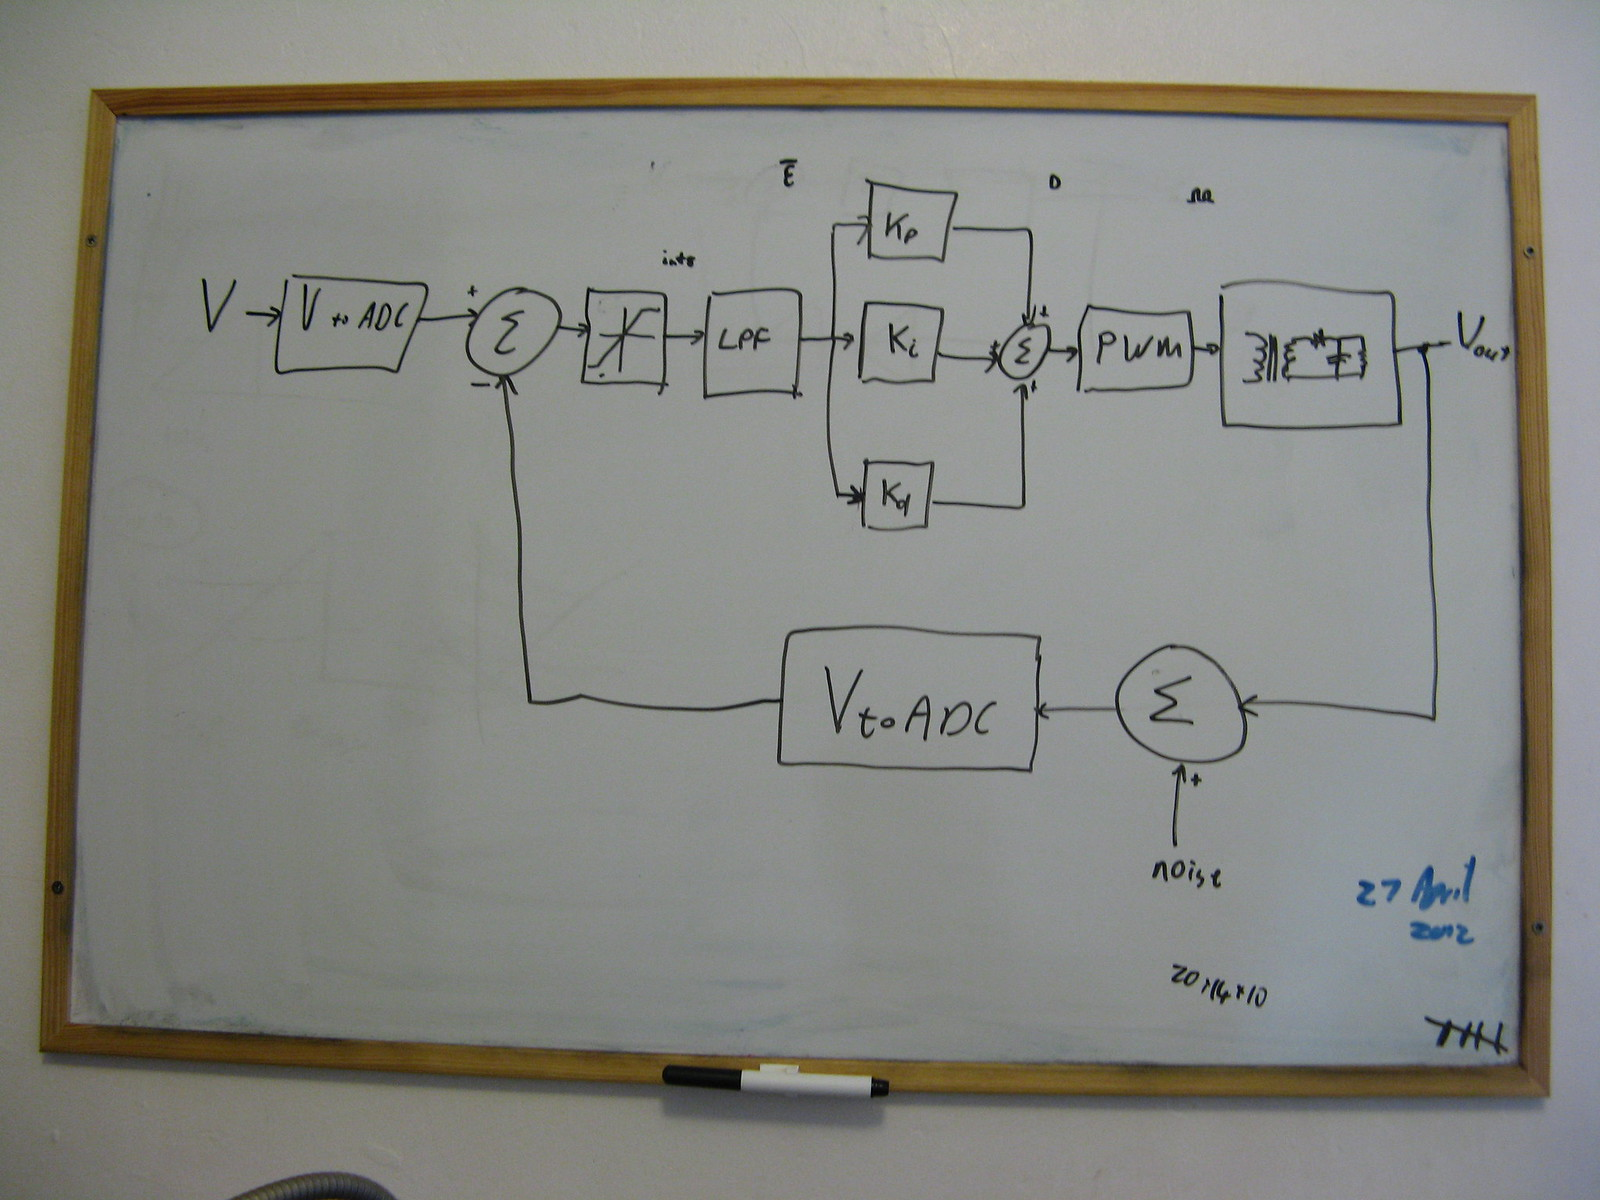 Voltage feedback block diagram